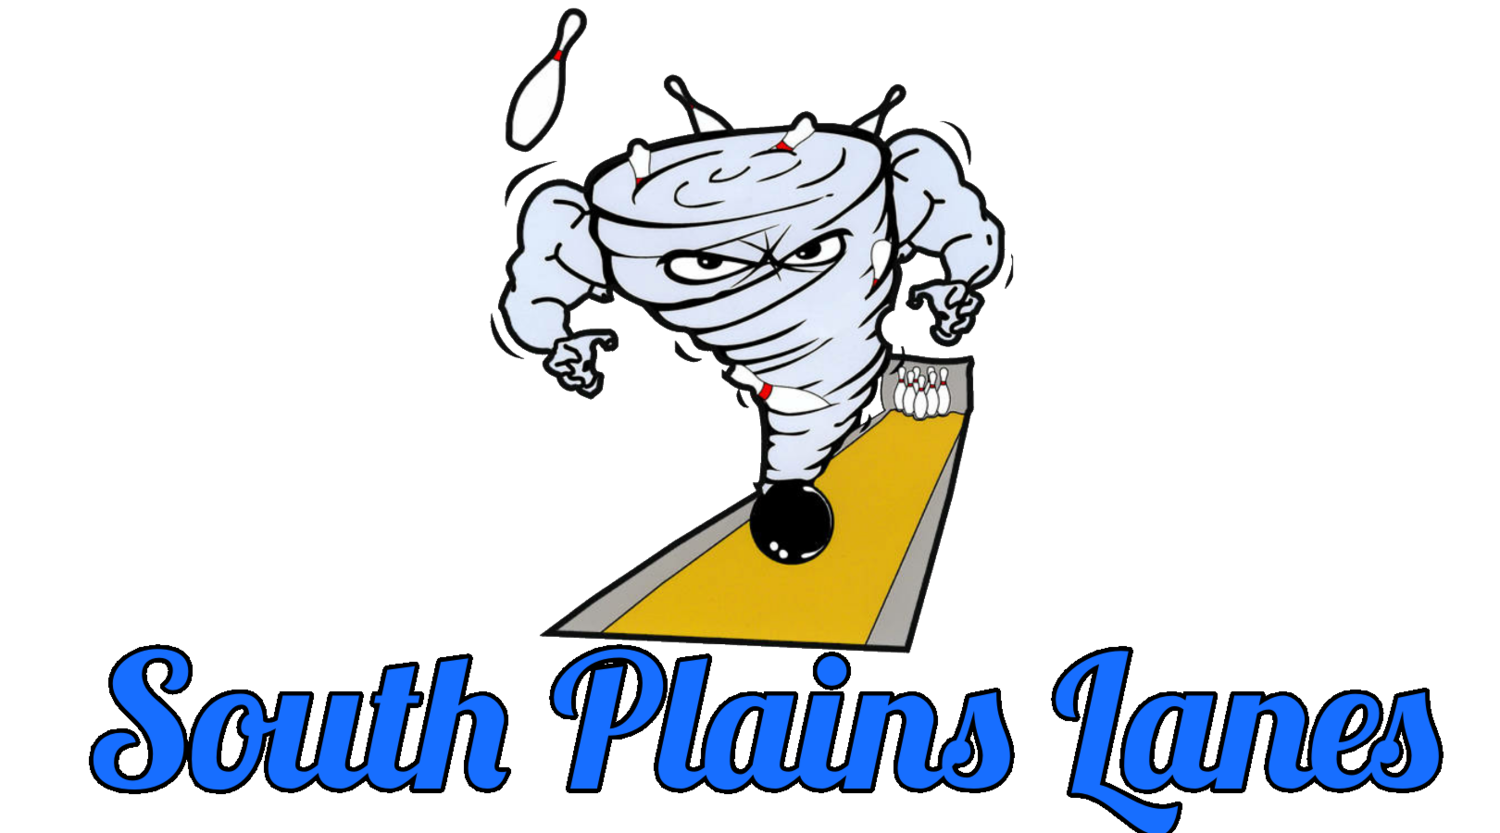 South Plains Lanes & Lounge